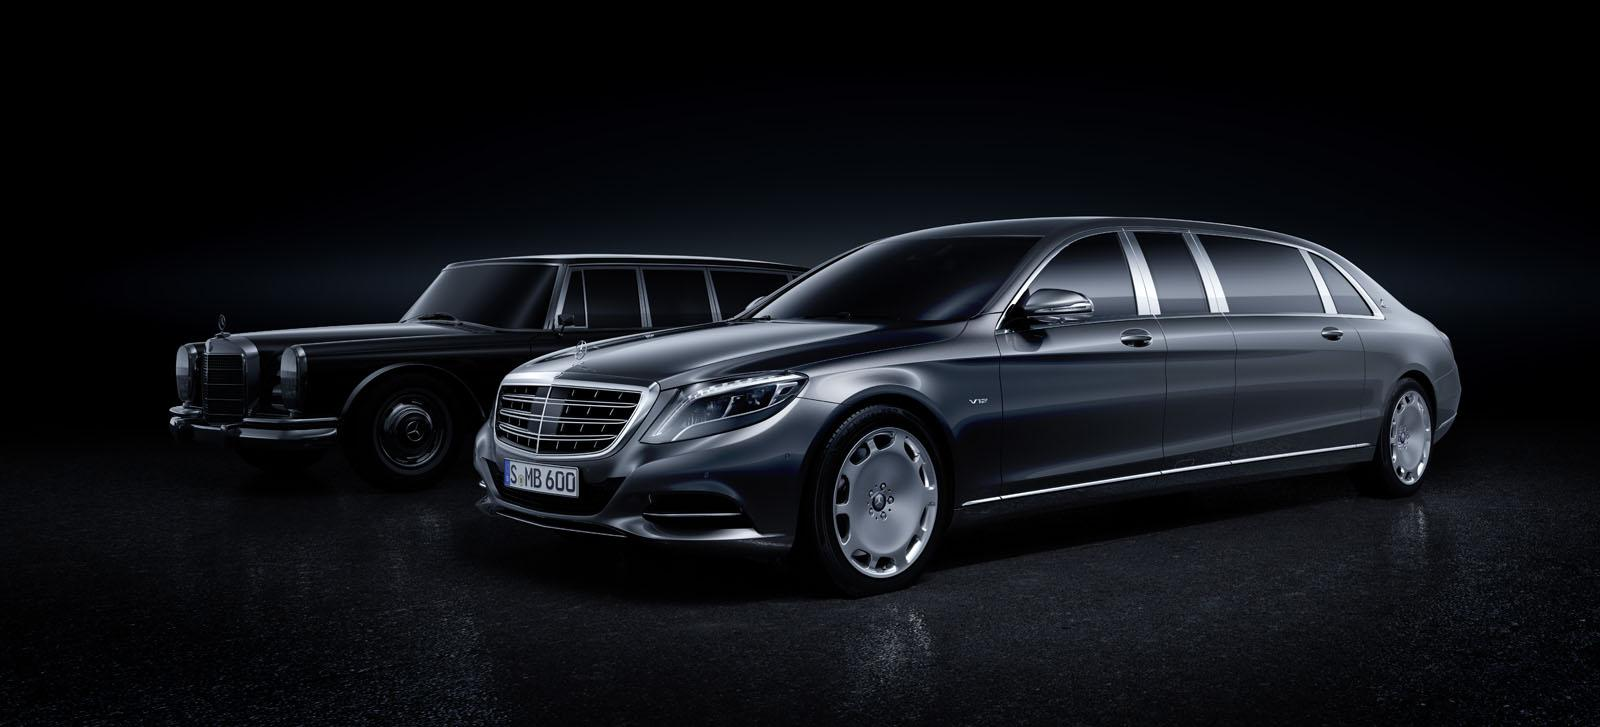 https://s1.cdn.autoevolution.com/images/news/mercedes-maybach-pullman-unveiled-with-massive-wheelbase-and-stately-interior-92392_1.jpg